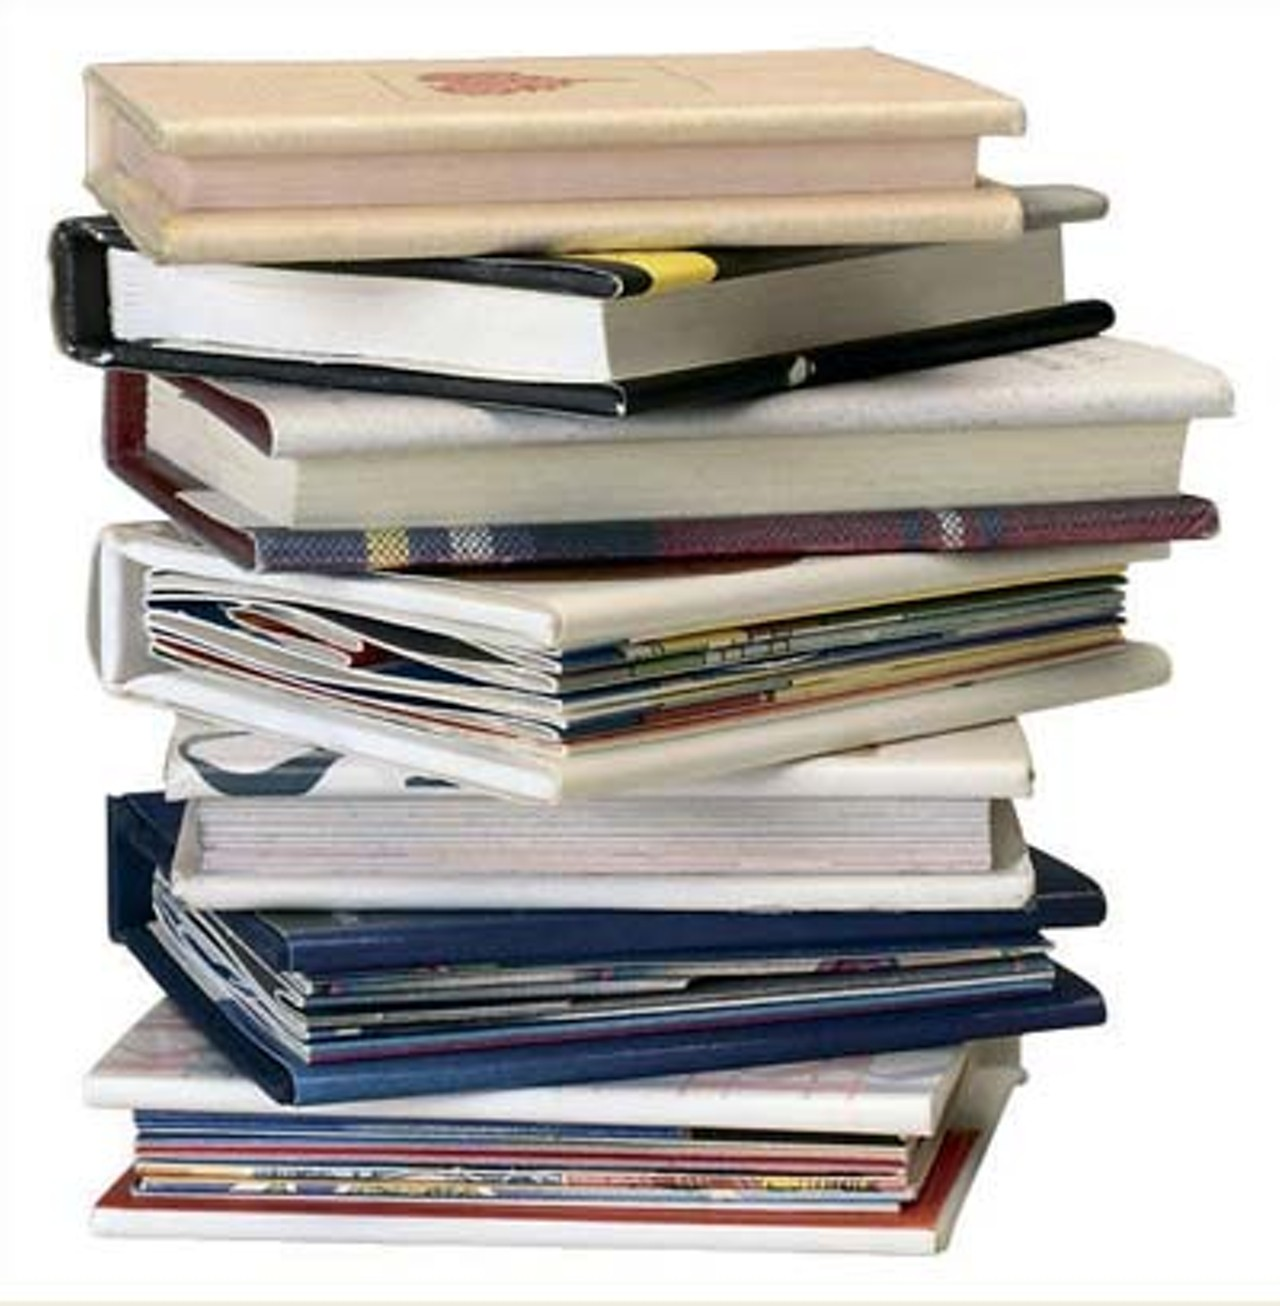 books stack manuals library read moves reading service fanpop publishing bit history resources goldwingdocs owners goldwing honda therapy enlarge memphis